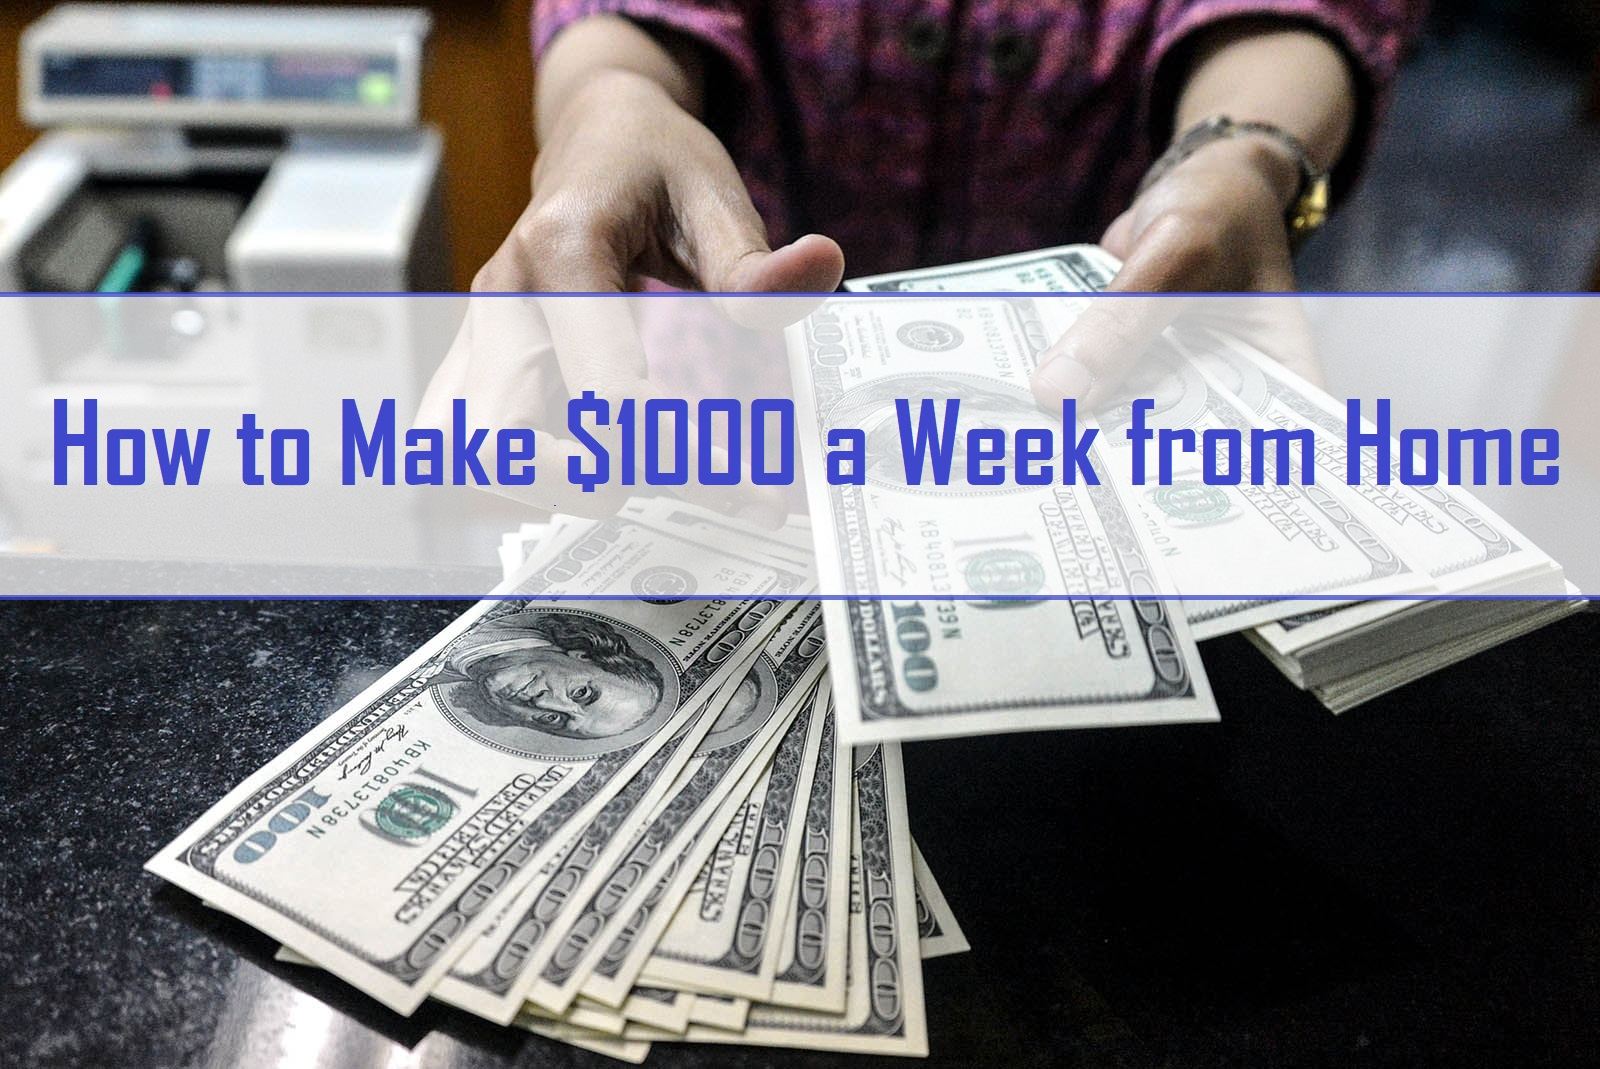 How to Make $1000 a Week from Home